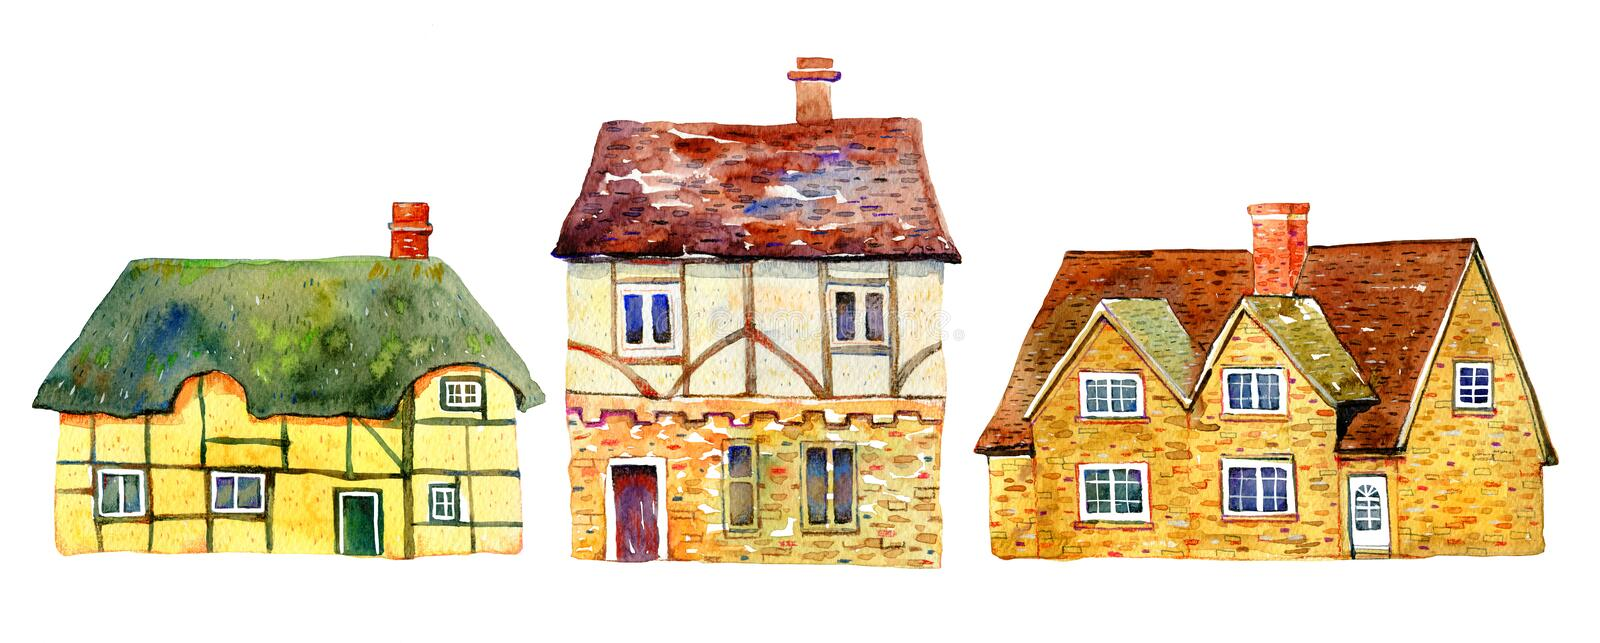 English village buildings separated in row. Watercolor old stone europe houses. Hand drawn illustration vector illustration